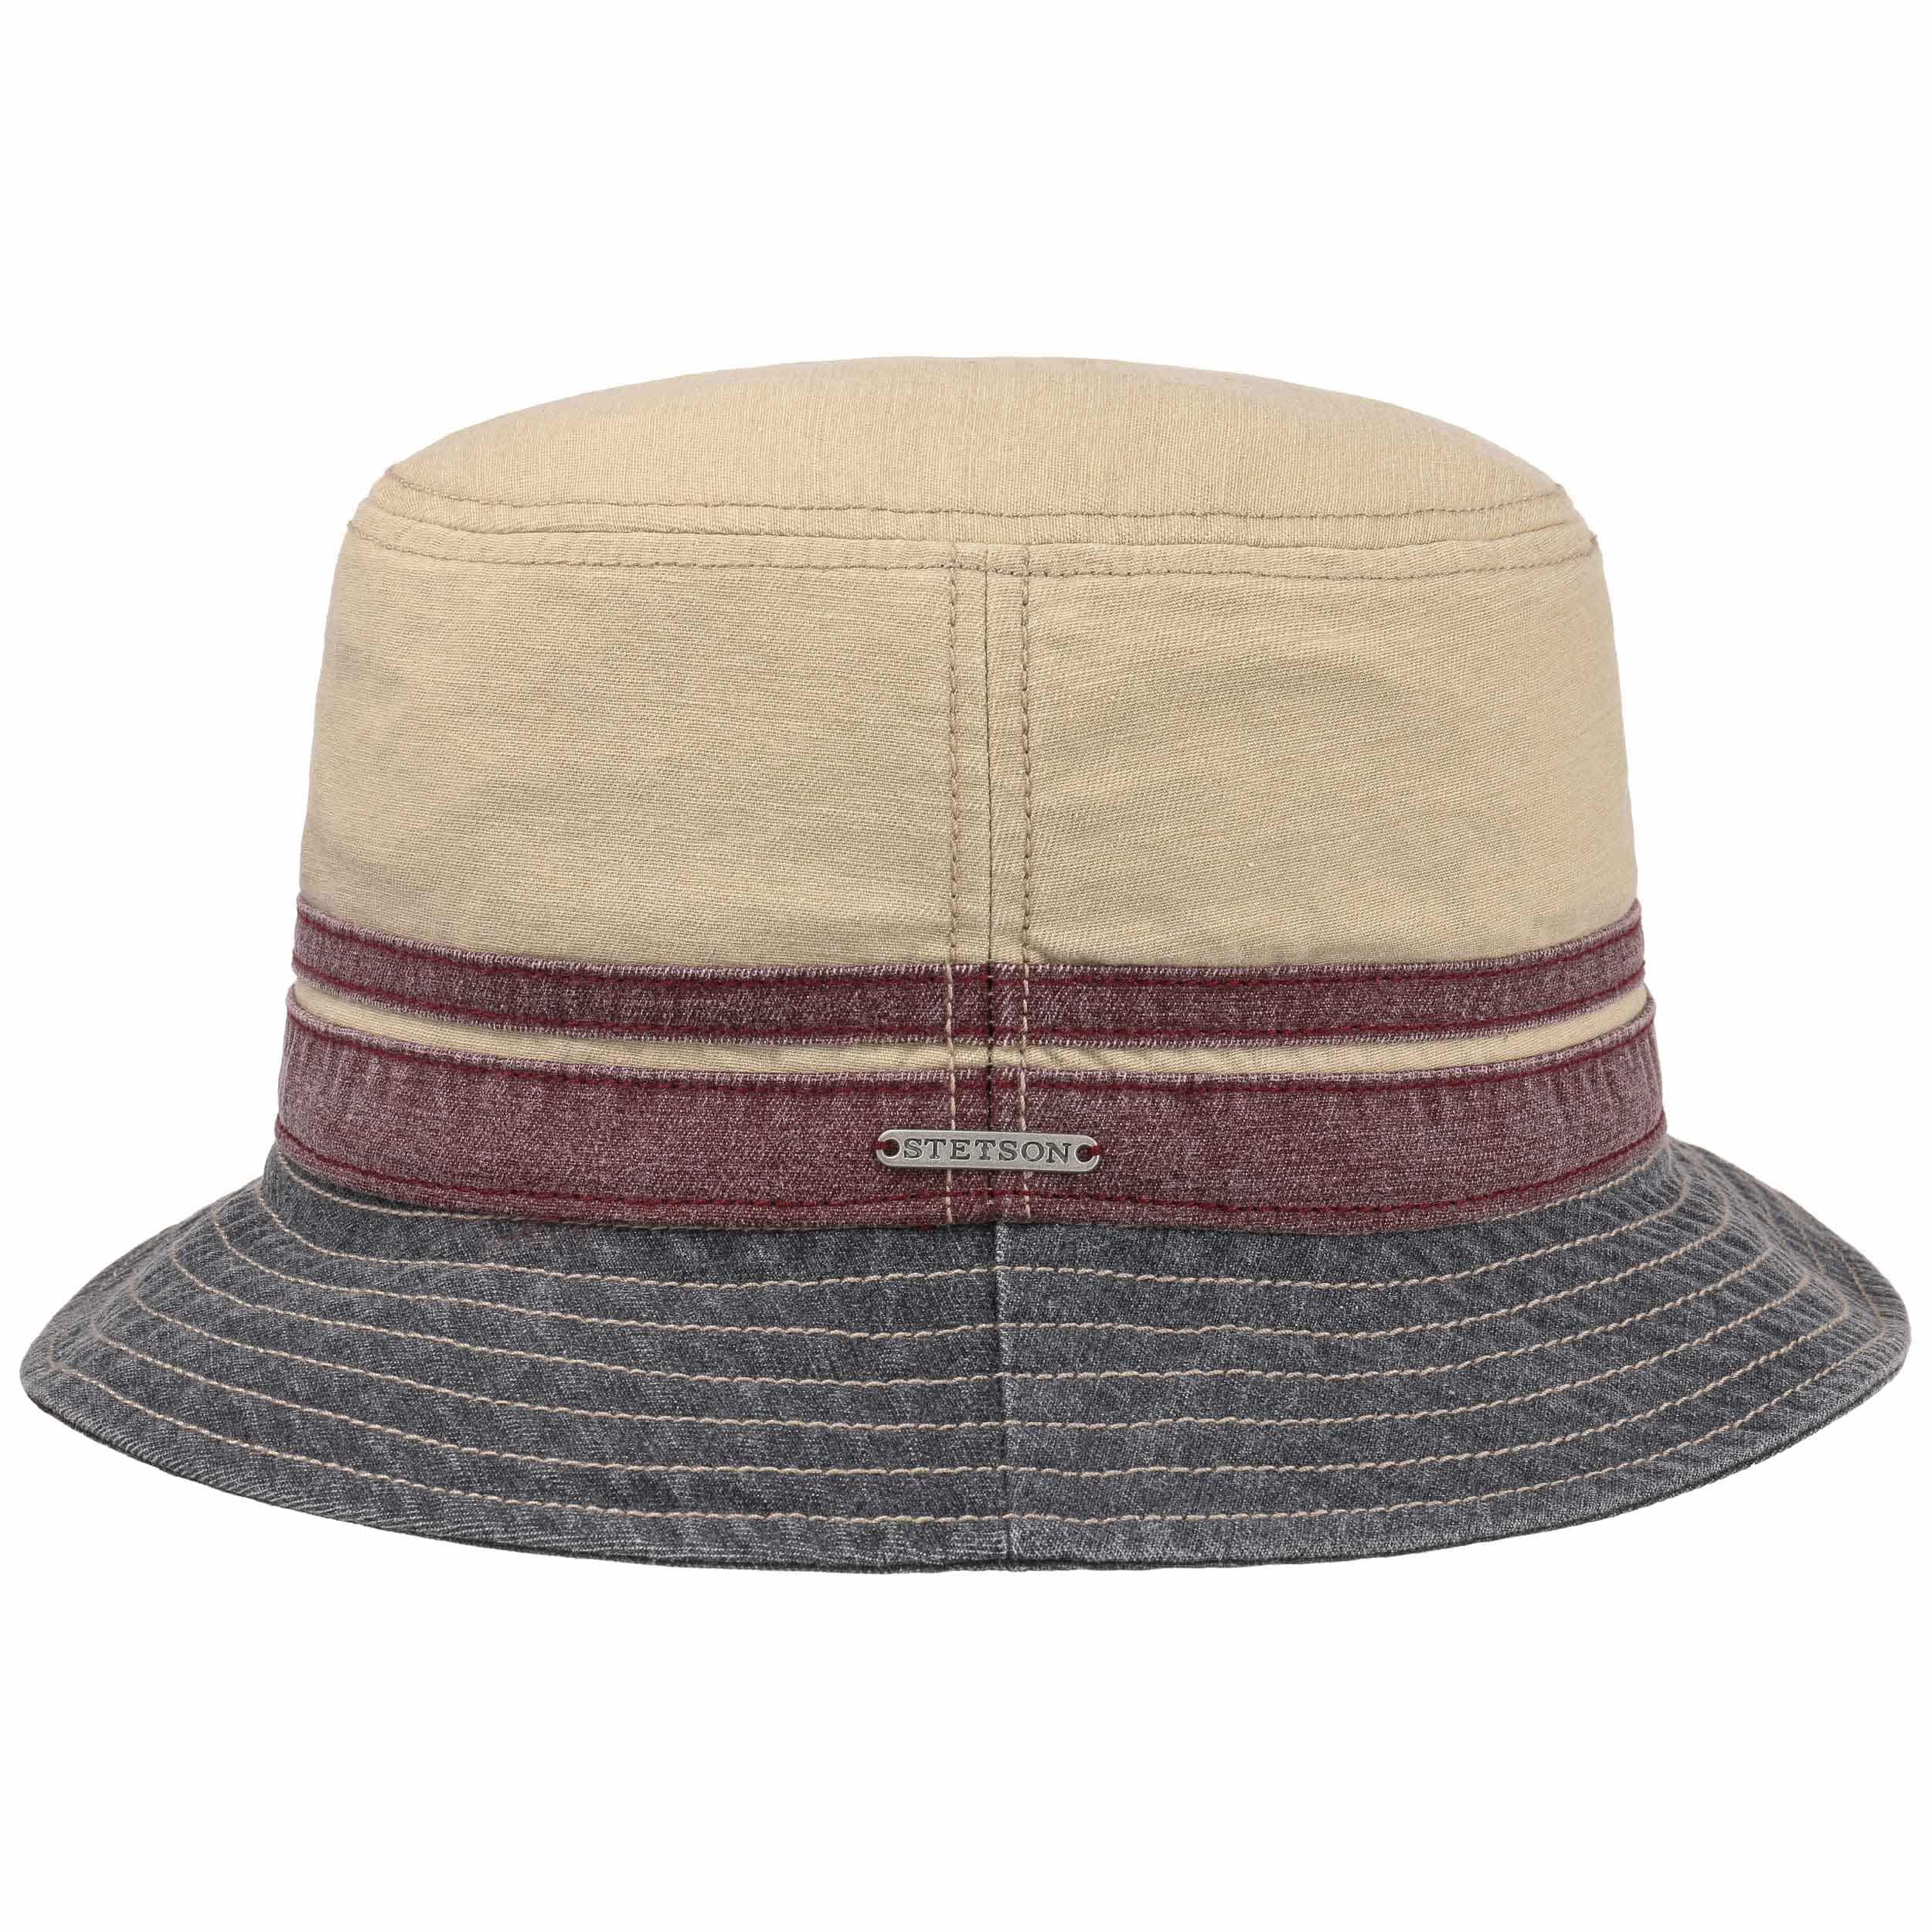 Washed Cotton Bucket Hat by Stetson a55d4d3bba0